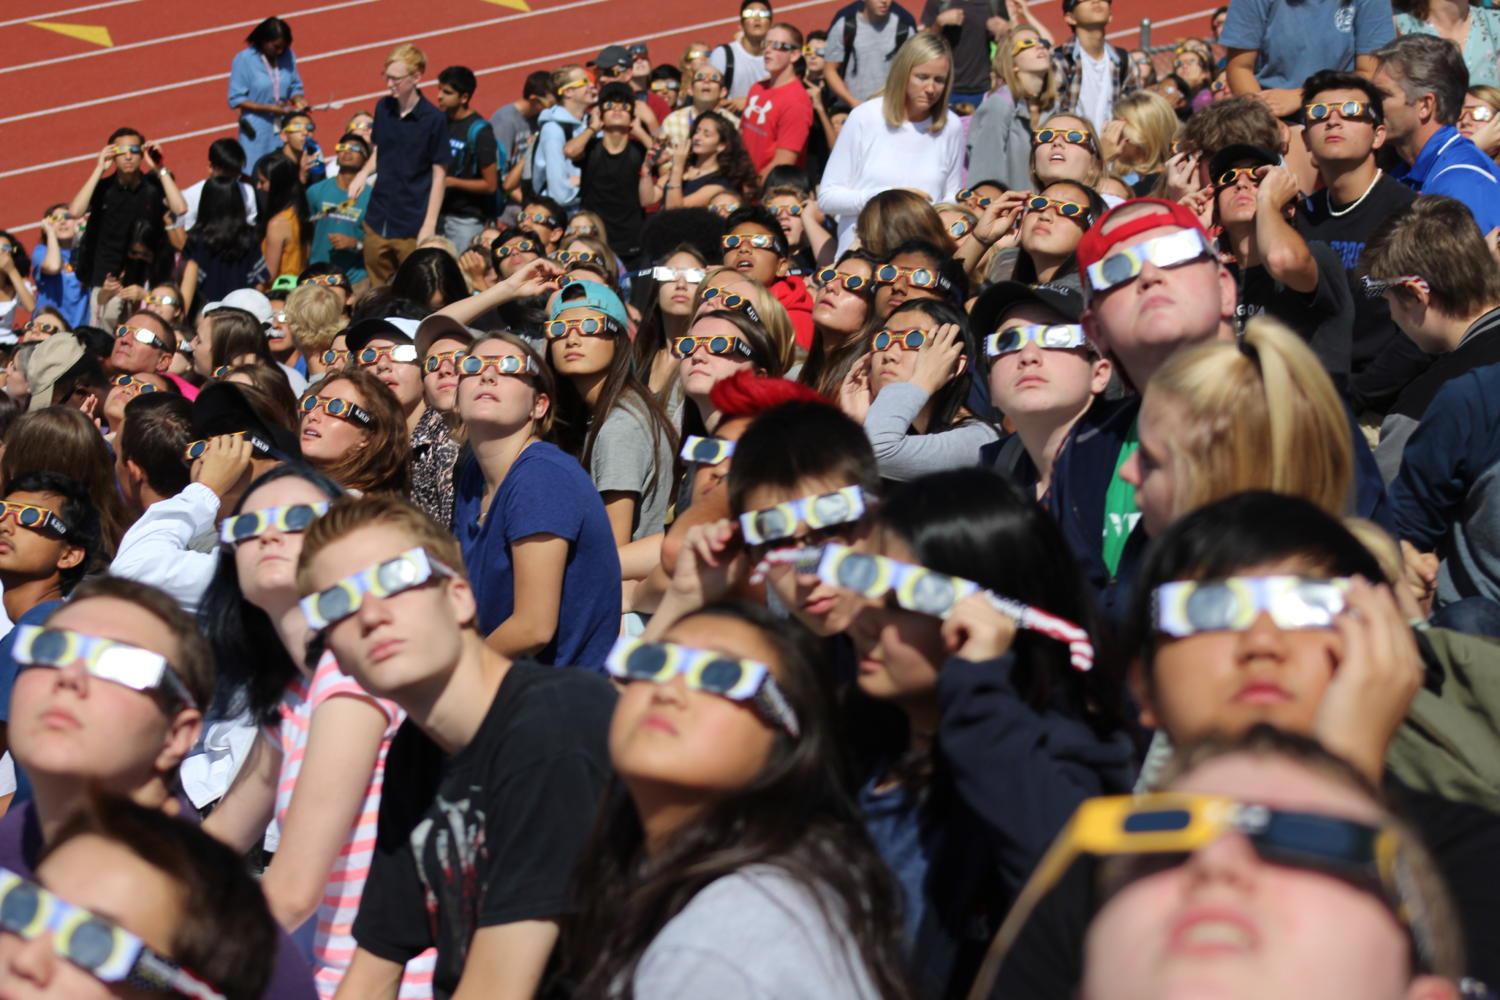 Students viewed the solar eclipse with safety glasses in the Stutler Bowl on Aug. 21.